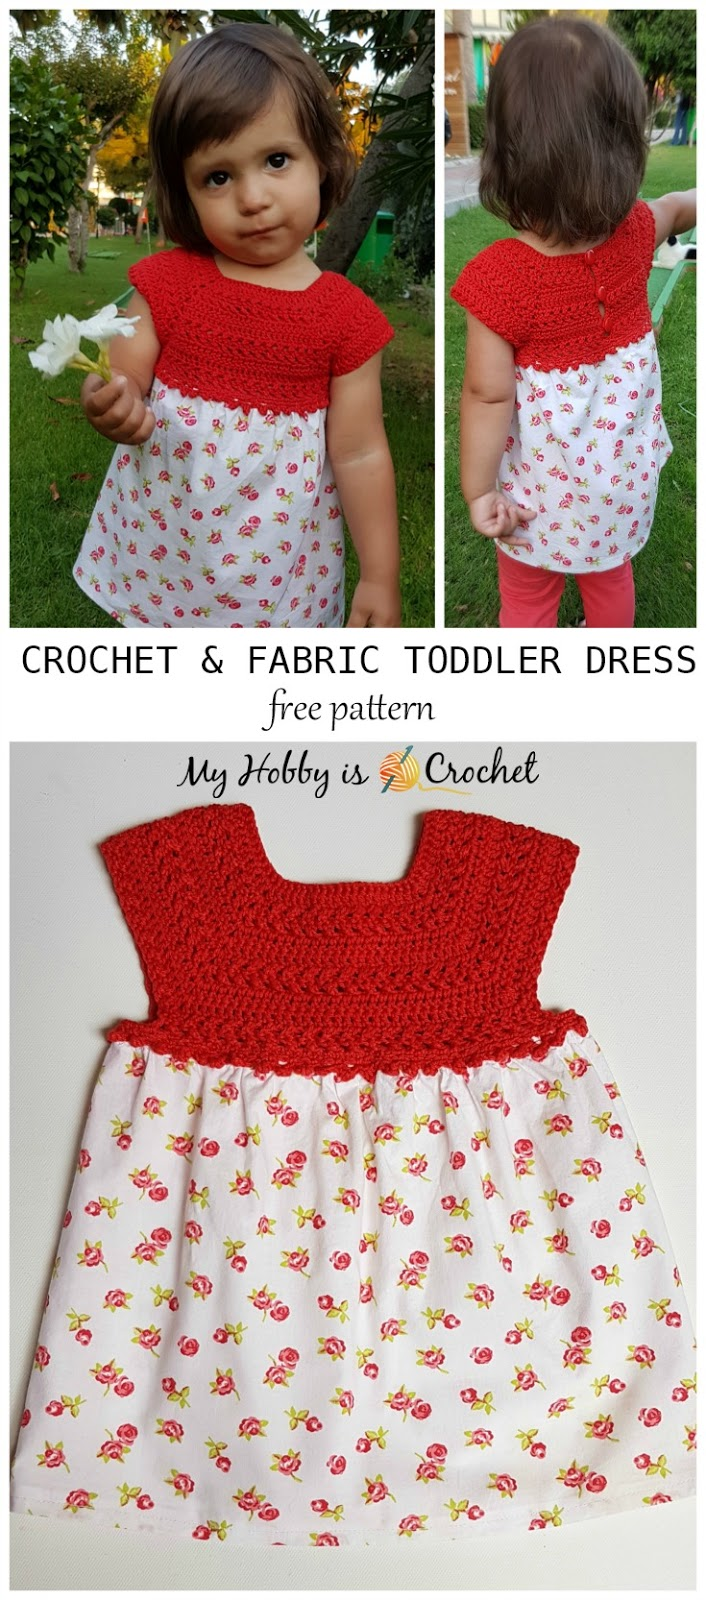 My hobby is crochet crochet fabric toddler dress elisa free crochet fabric toddler dress elisa free pattern bankloansurffo Image collections